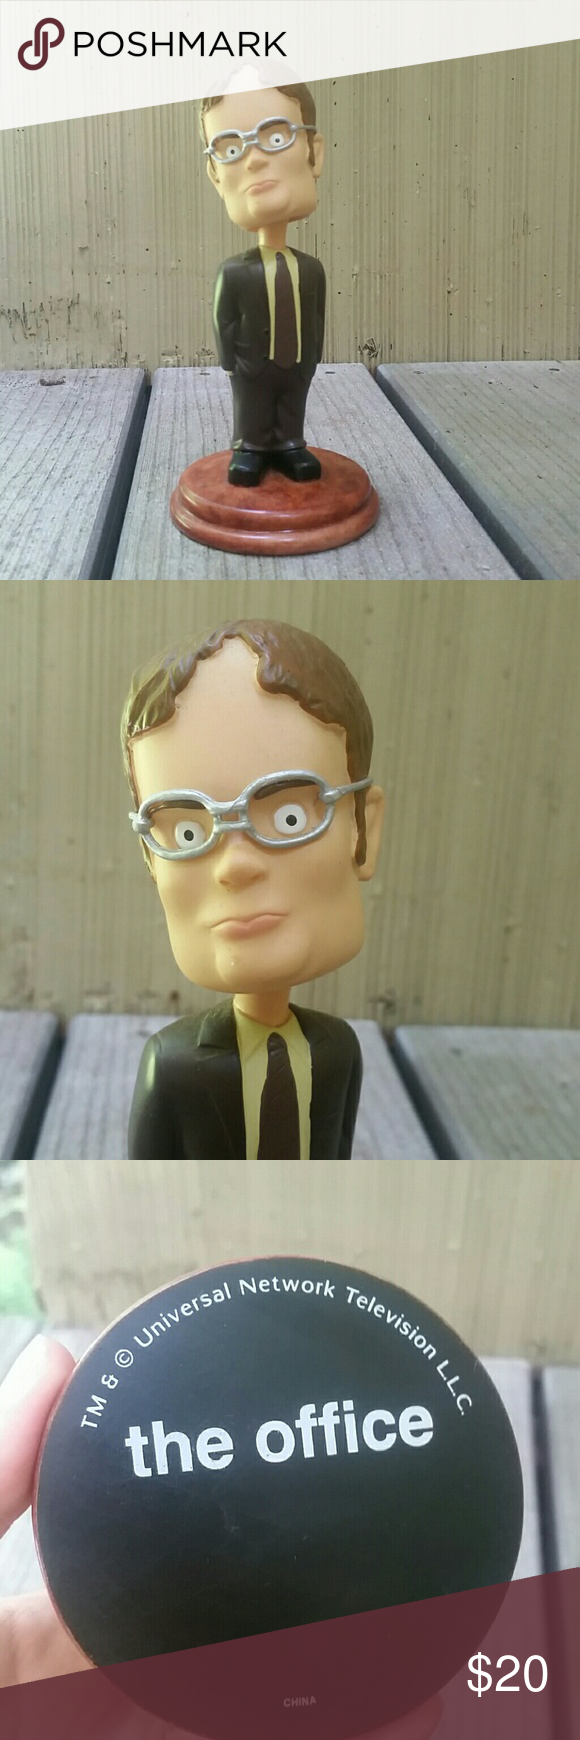 Dwight Schrute Bobblehead The Office Dwight Schrute Bobblehead Dwight Schrute Bobble Head